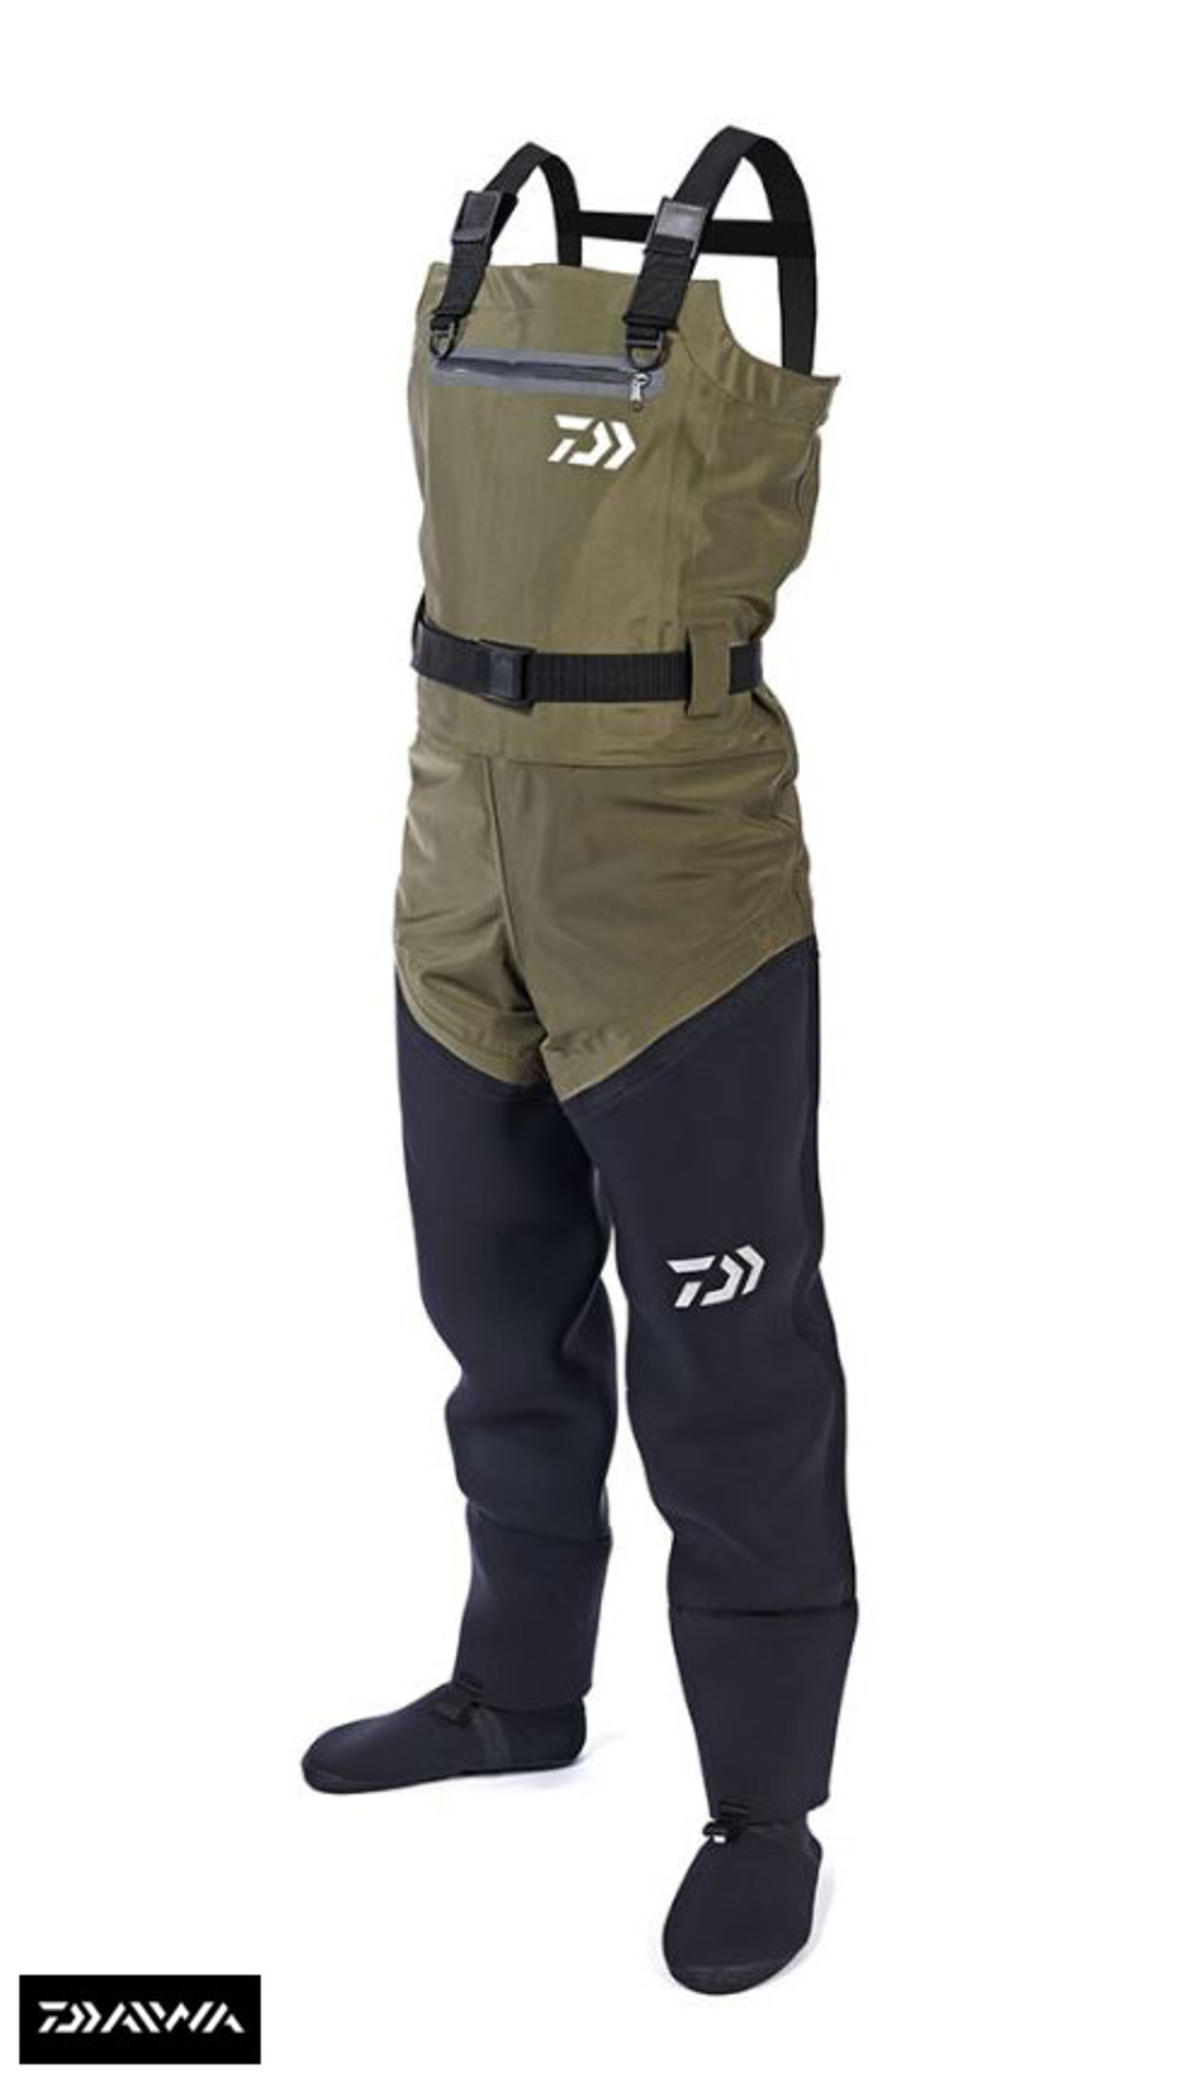 7d4b9cc95c0 /New Daiwa Hybrid 4 Stretch Breathable / Neoprene 4S Chest Waders - All  Sizes | Breathable Waders | Fishing Mad